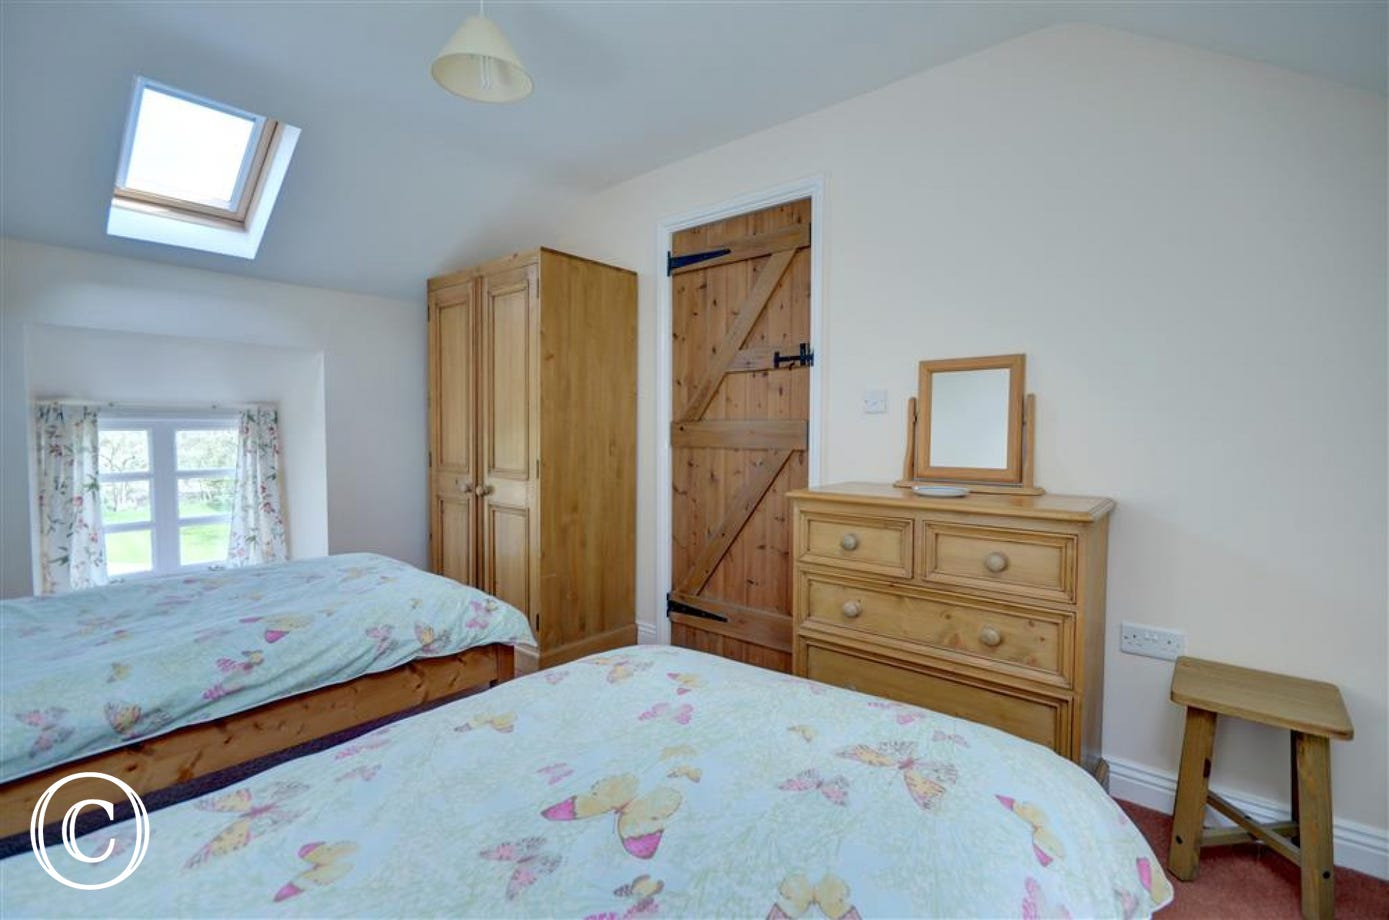 Twin beds with wardrobe and chest of draws.